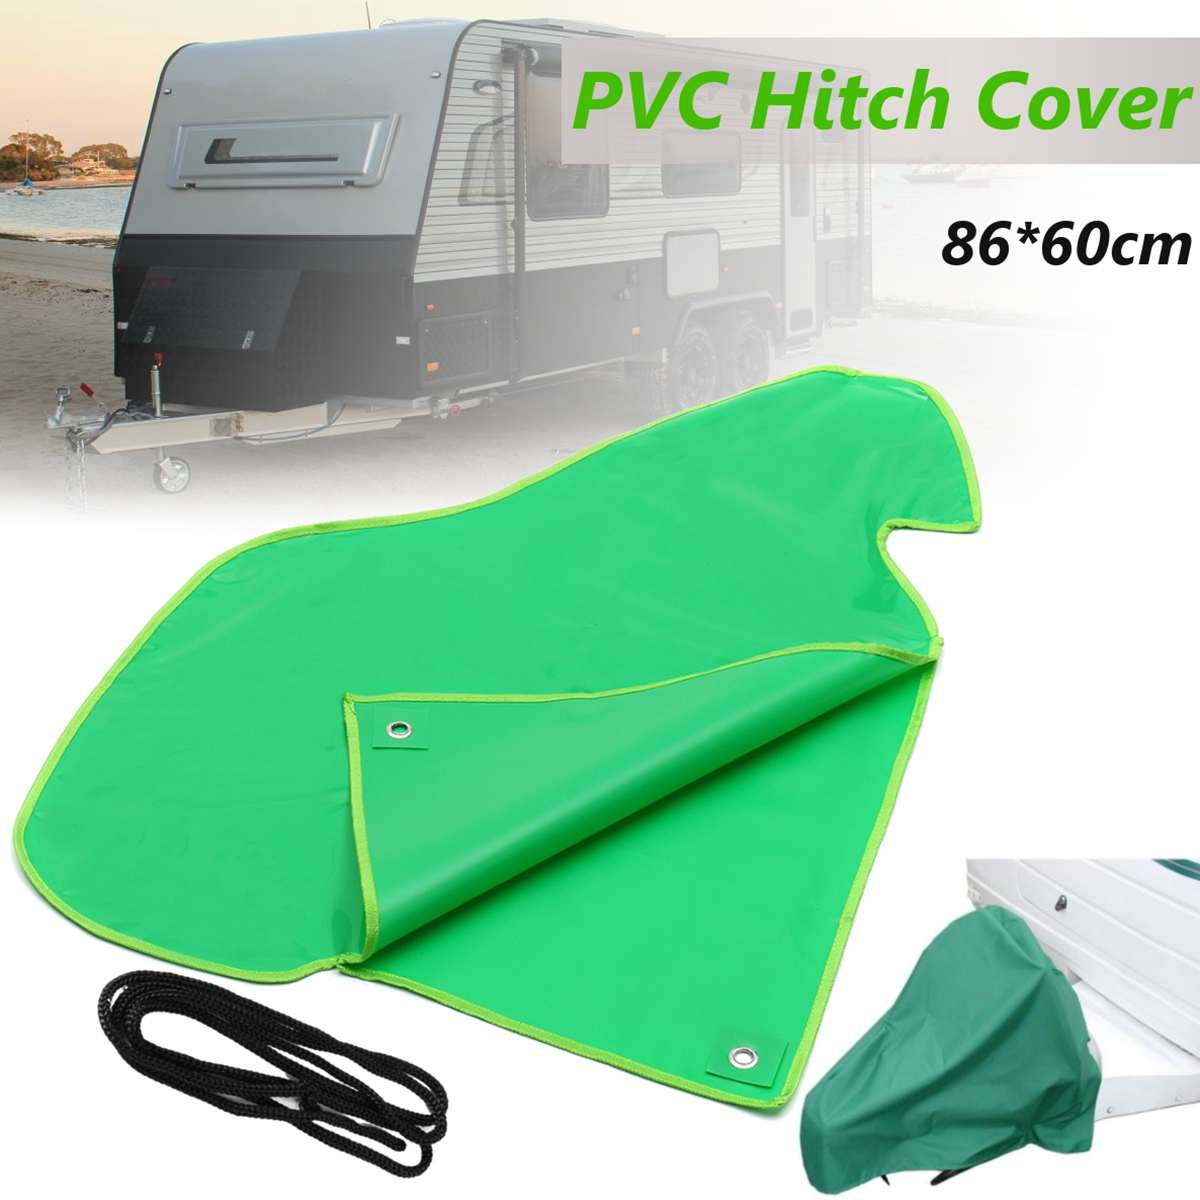 Green Color PVC Car Waterproof Trailer Towing Hook Connector Hitch Cover For Caravan Tailer Hitch Coupling Lock Dust Protect